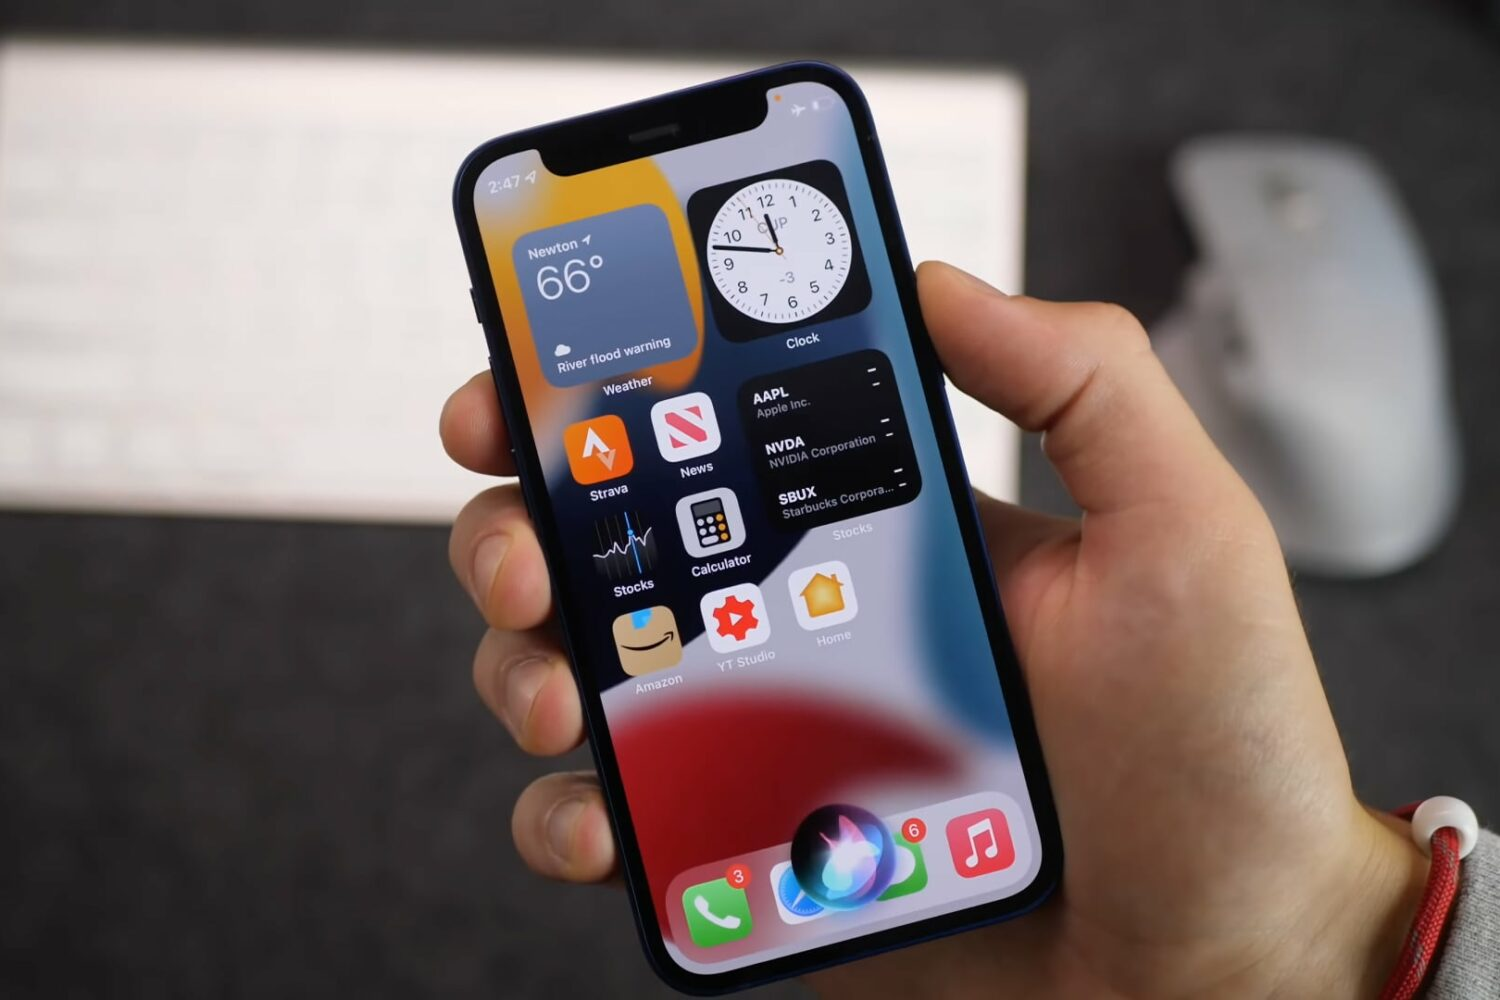 An image showing a young male's hand holding an iPhone 13 with iOS 15 home screen